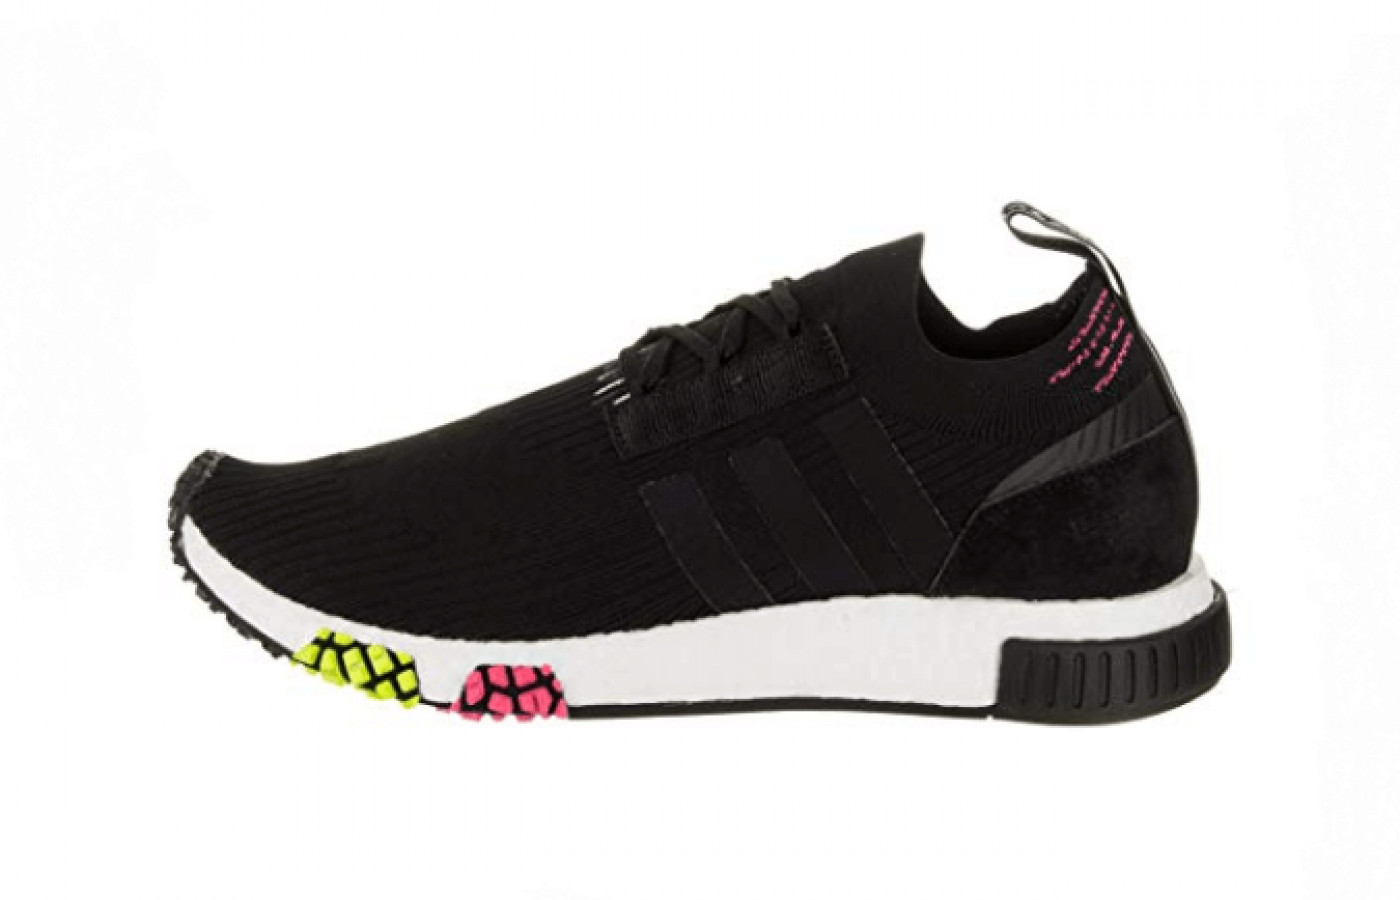 1d0da8520 Adidas NMD Racer Primeknit - To Buy or Not in May 2019